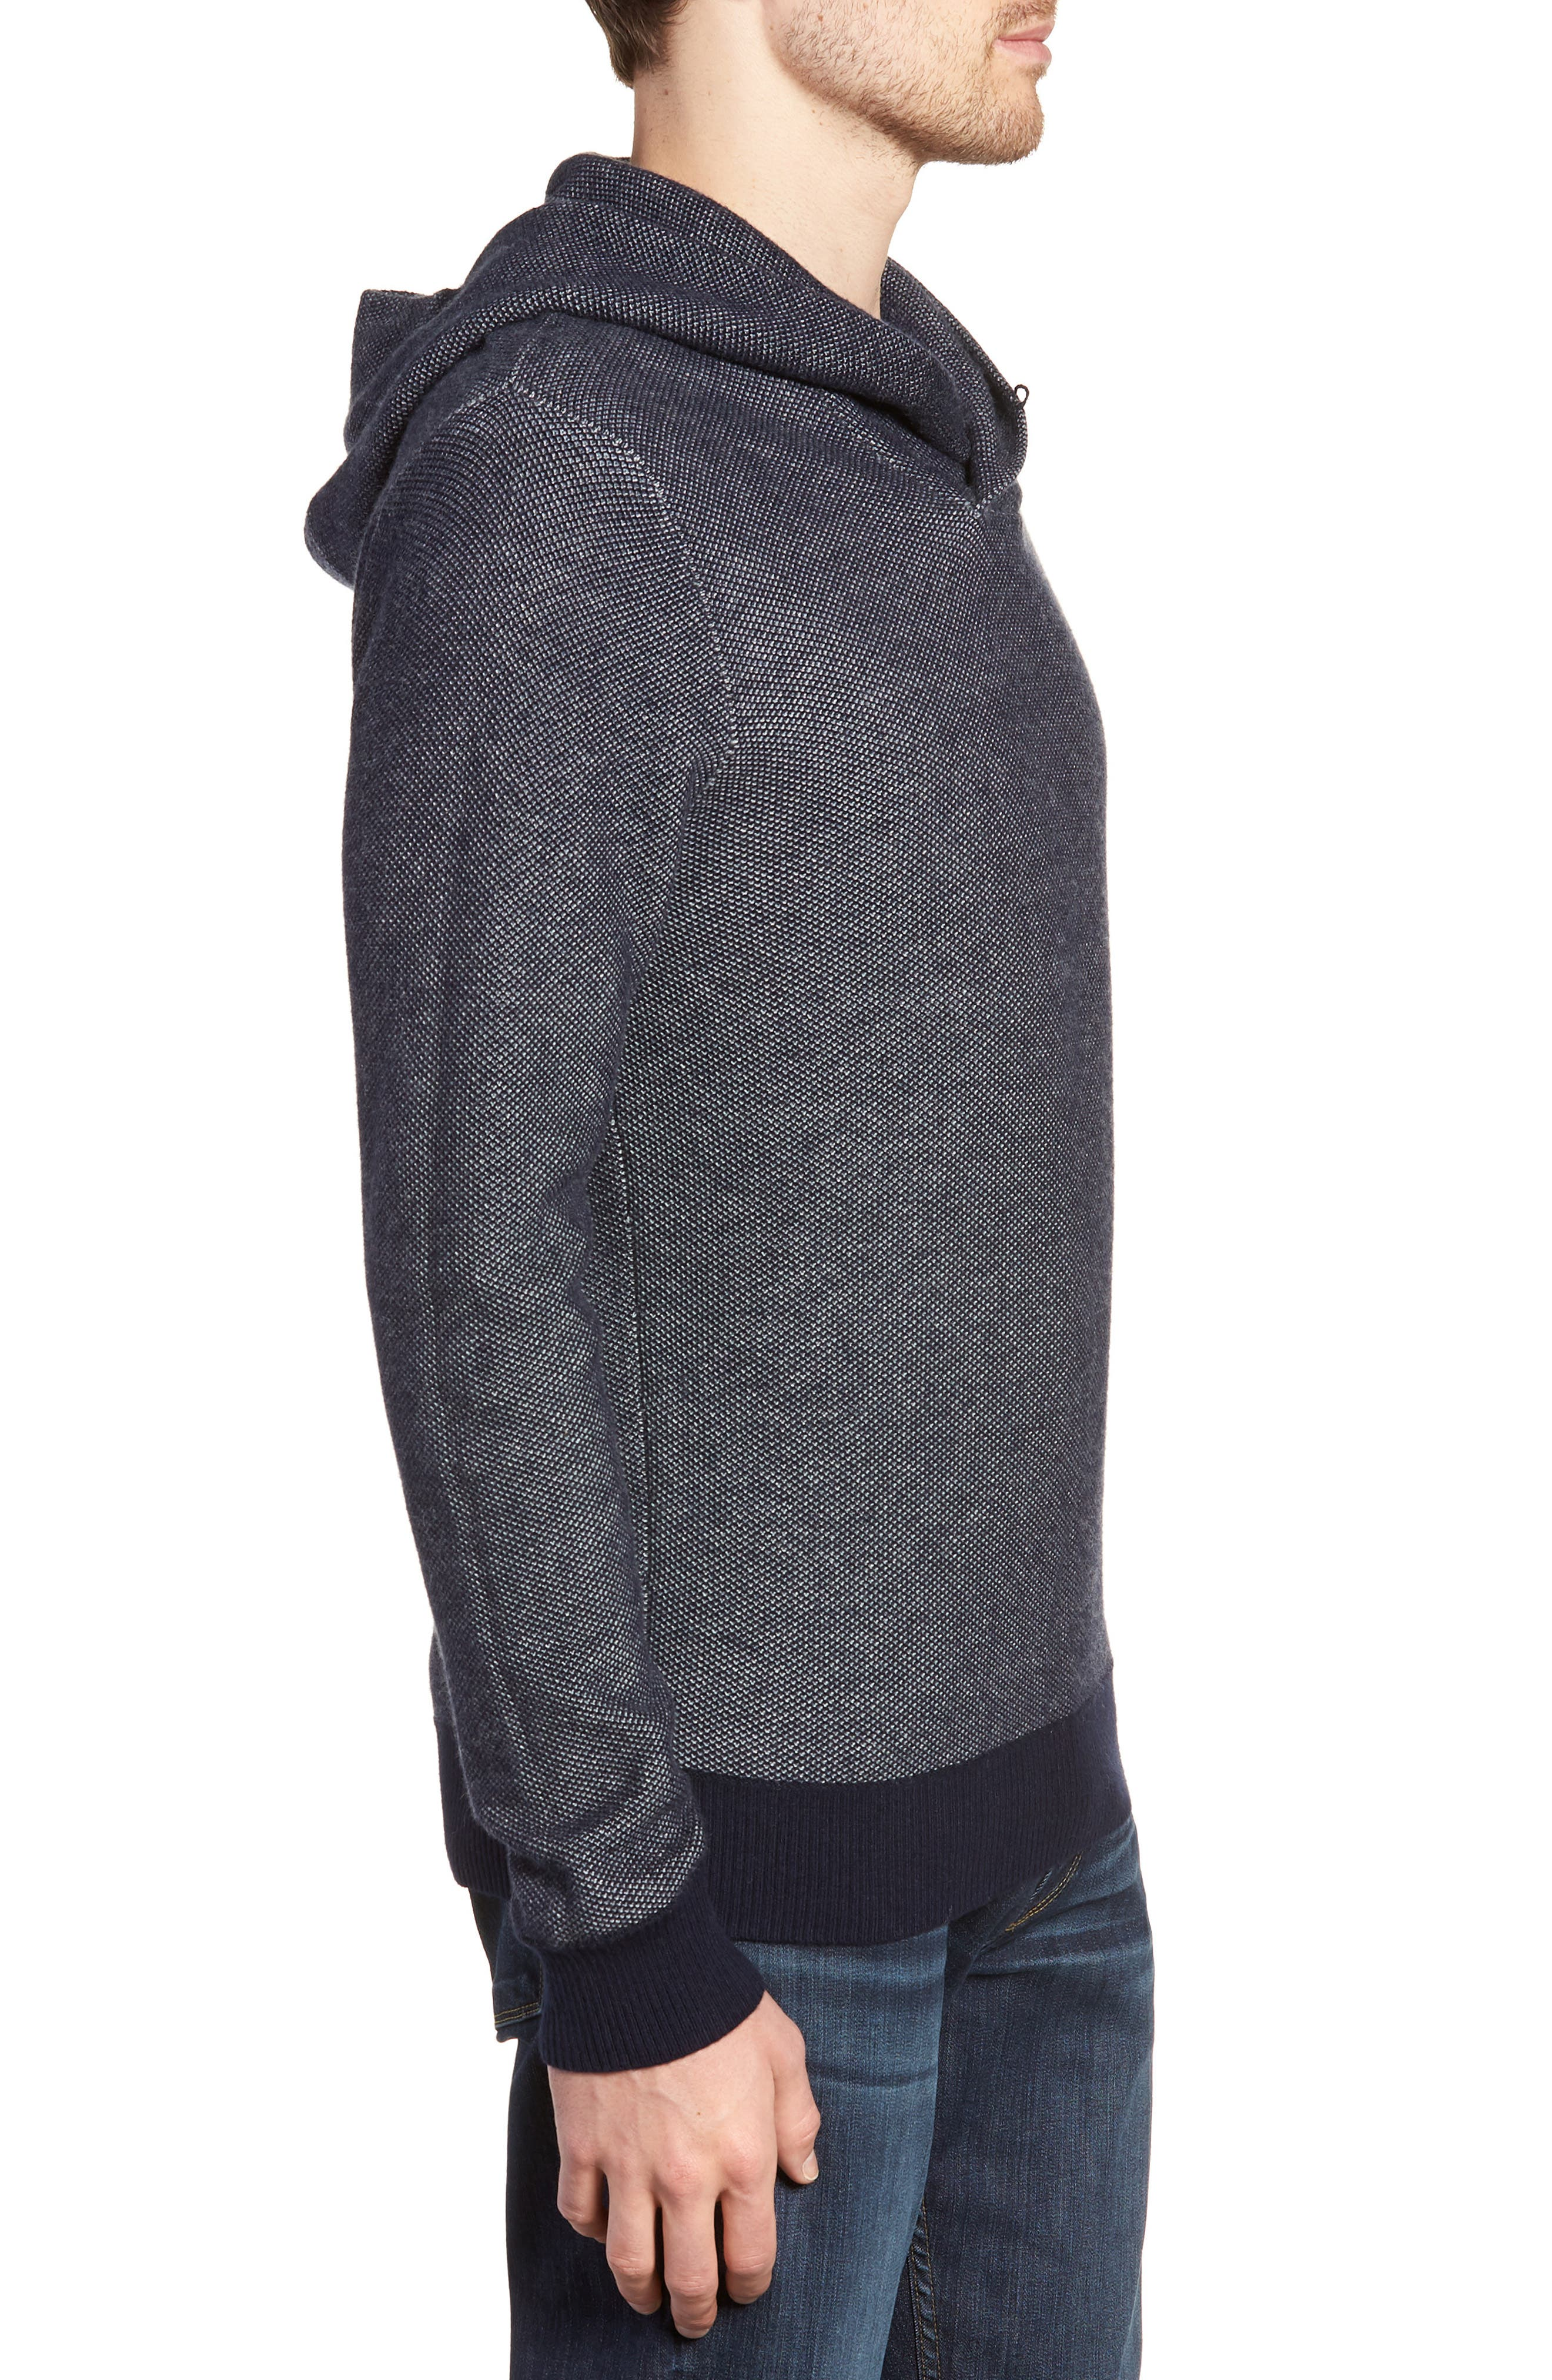 Cotton & Cashmere Hoodie,                             Alternate thumbnail 3, color,                             Midnight Blue/ Heather Silver